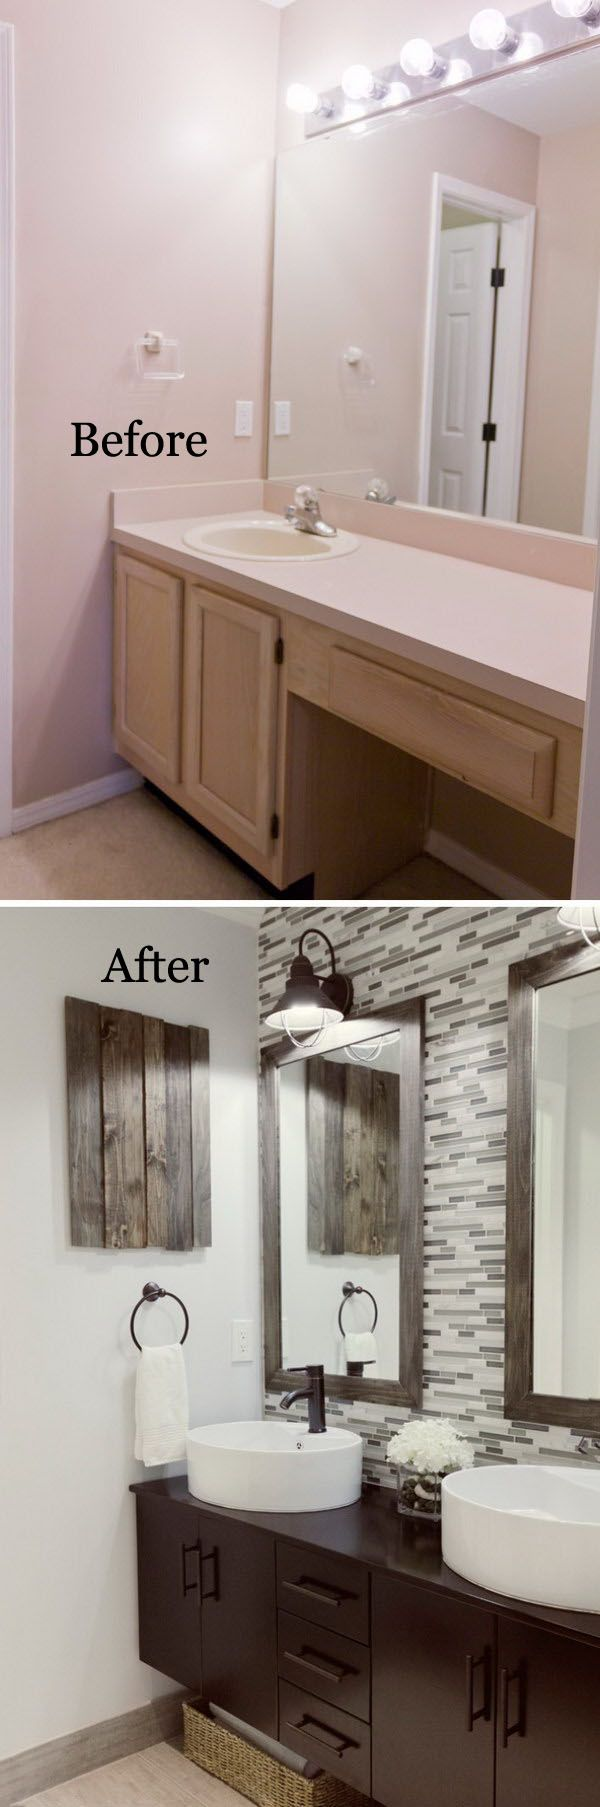 Before And After 20 Awesome Bathroom Makeovers Diy Bathroom Remodel Bathroom Remodel Master Small Bathroom Makeover